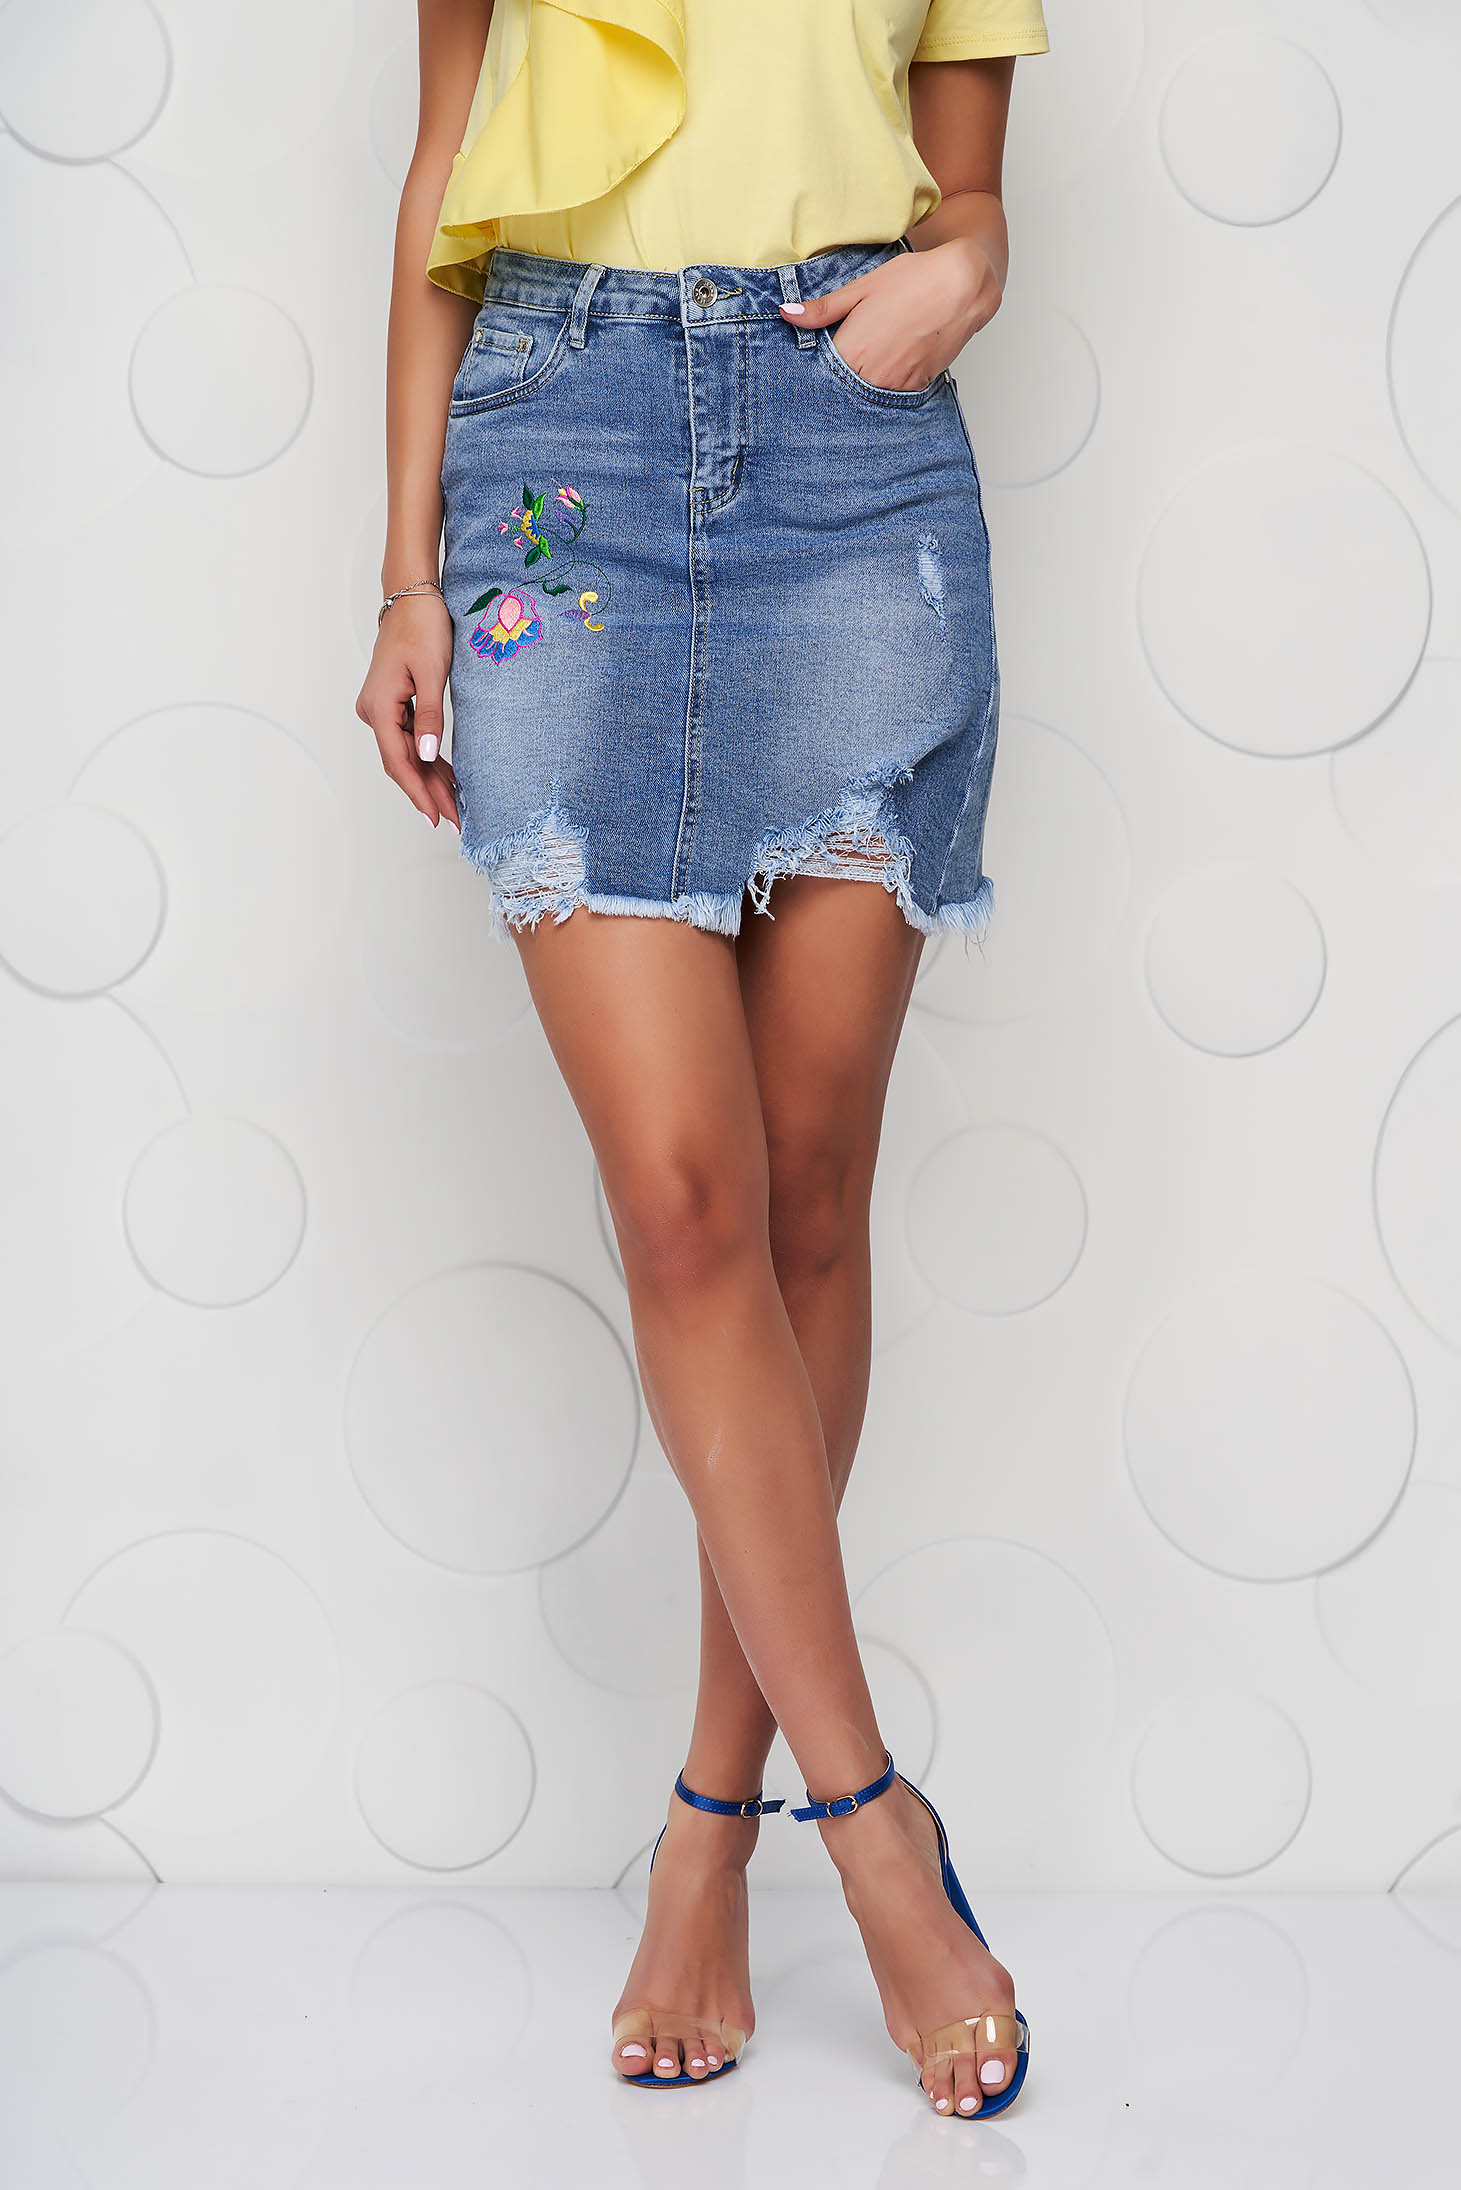 Blue skirt denim high waisted pencil small rupture of material embroidered